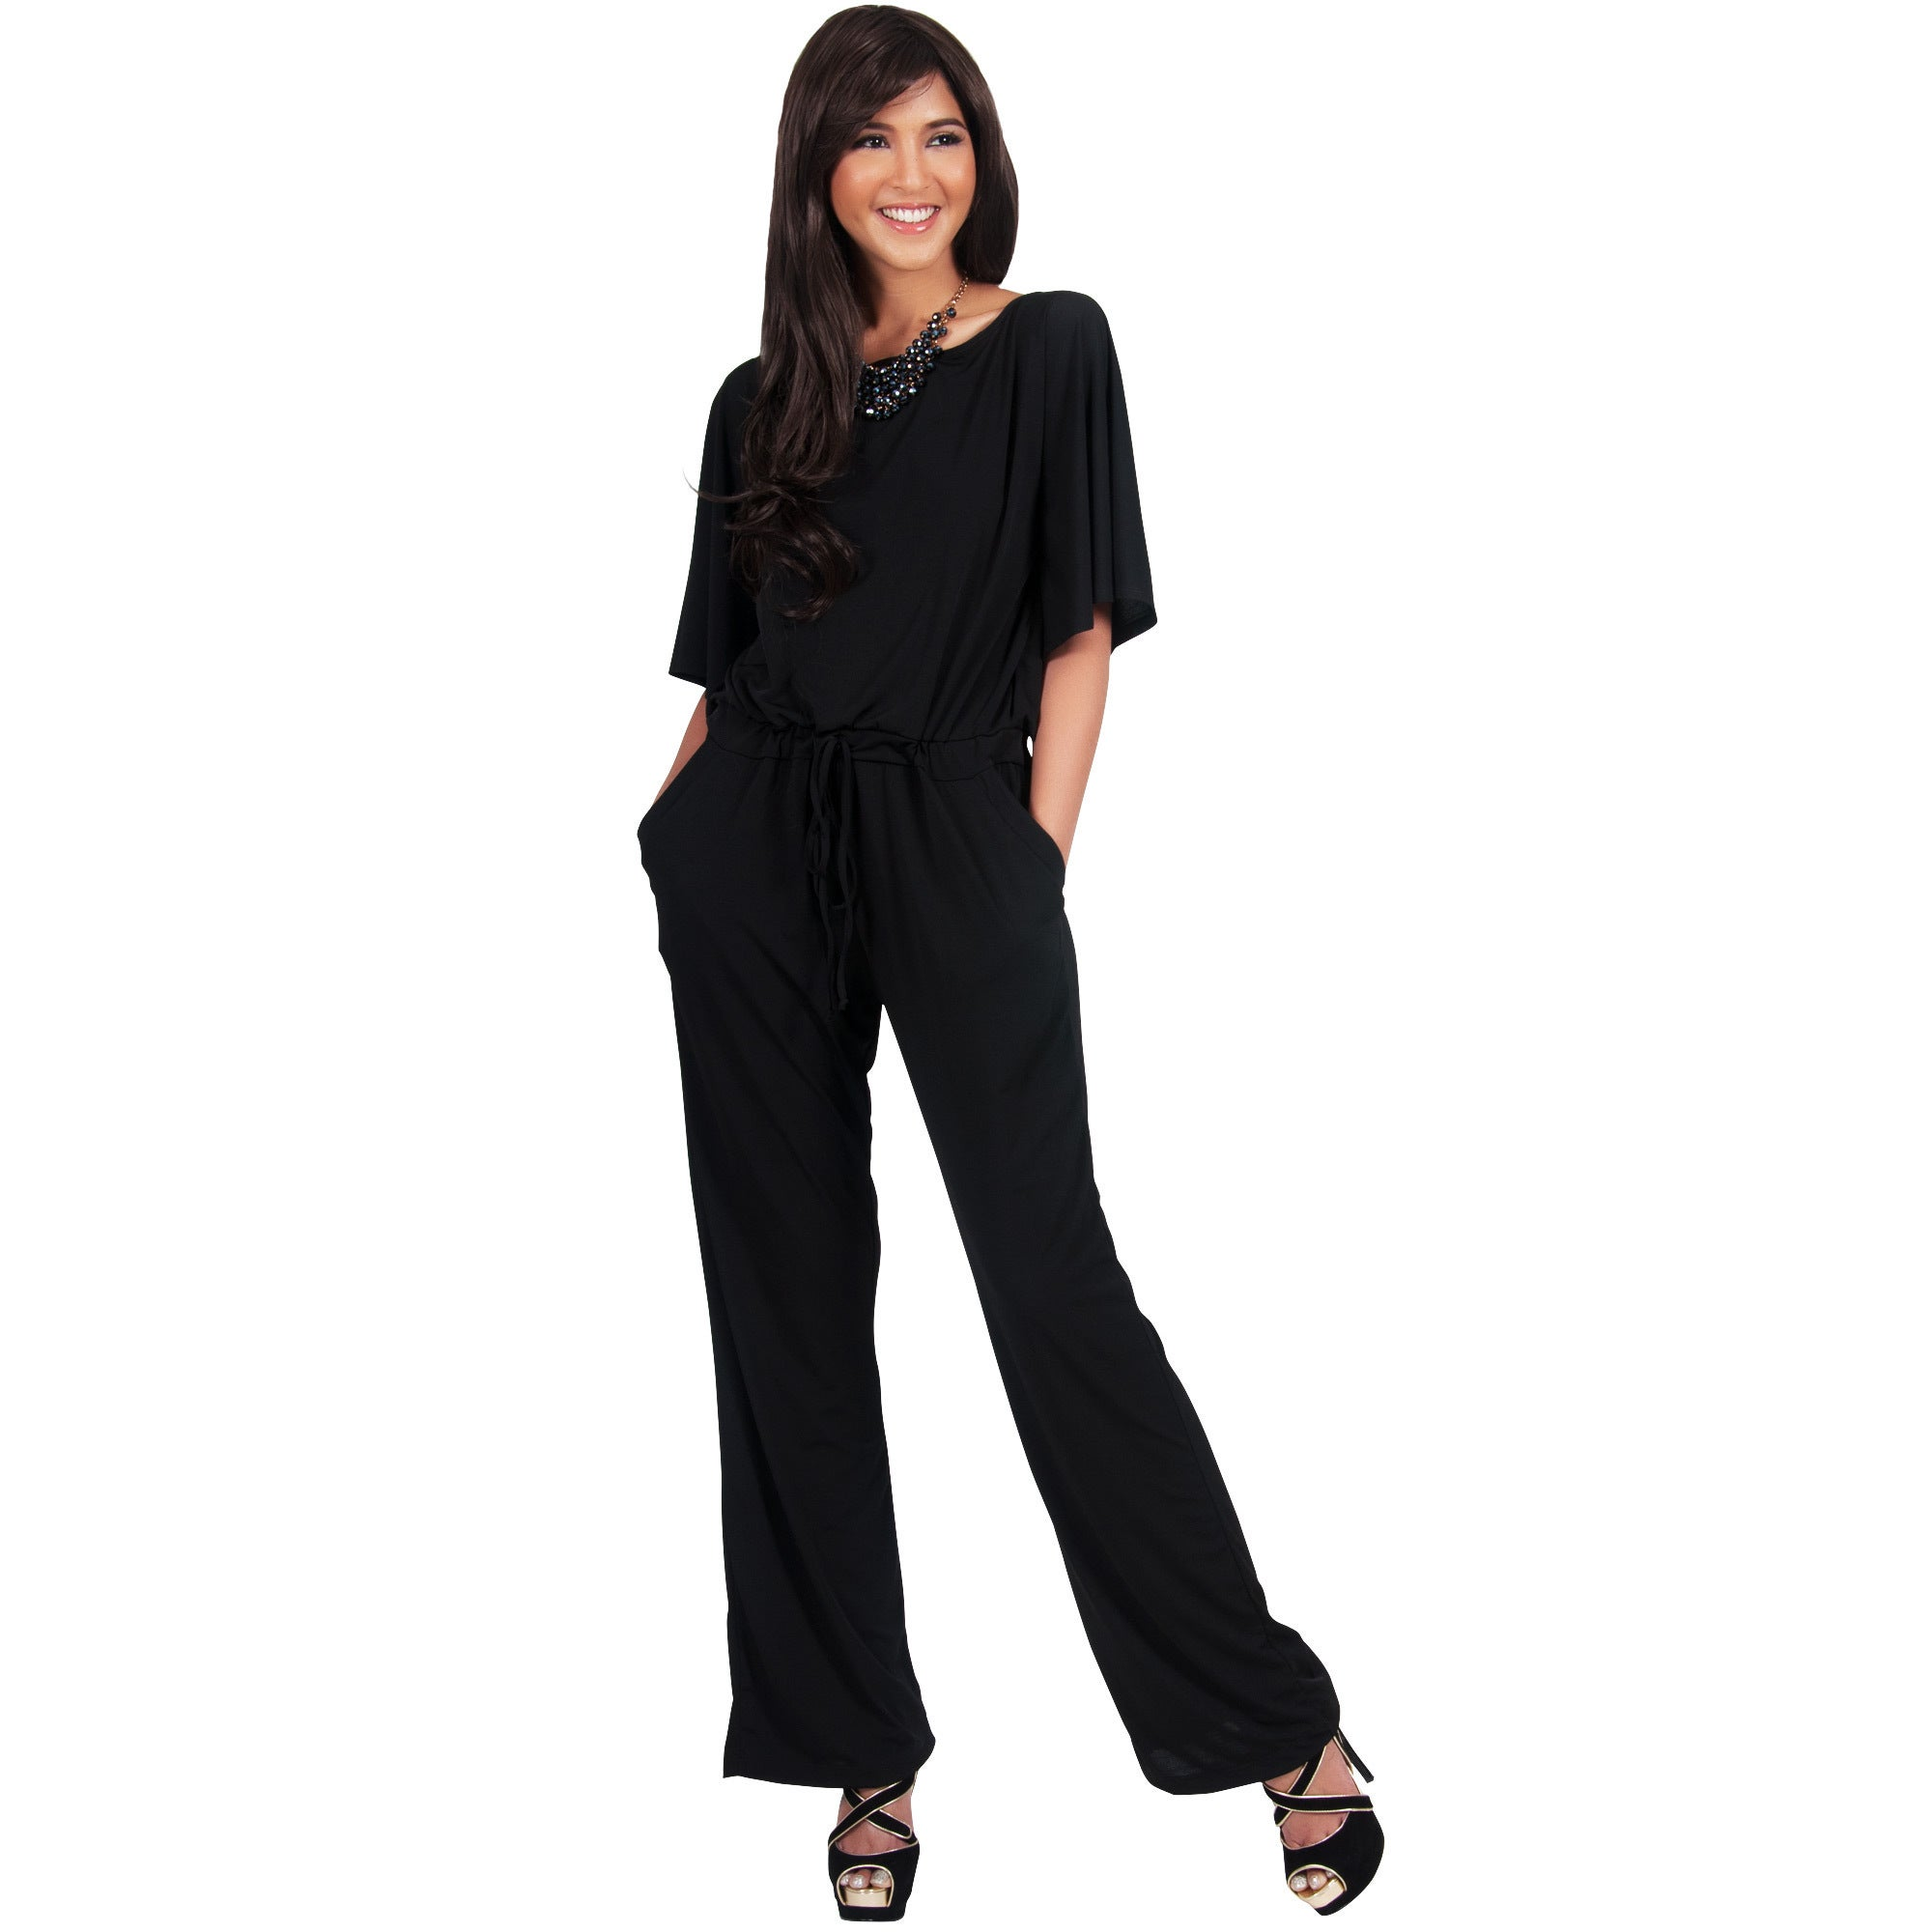 58f258d90fd6 Shop KOH KOH Womens Short Sleeve Boat Neck Slimming Formal Jumpsuit - Free  Shipping On Orders Over  45 - Overstock - 10910385